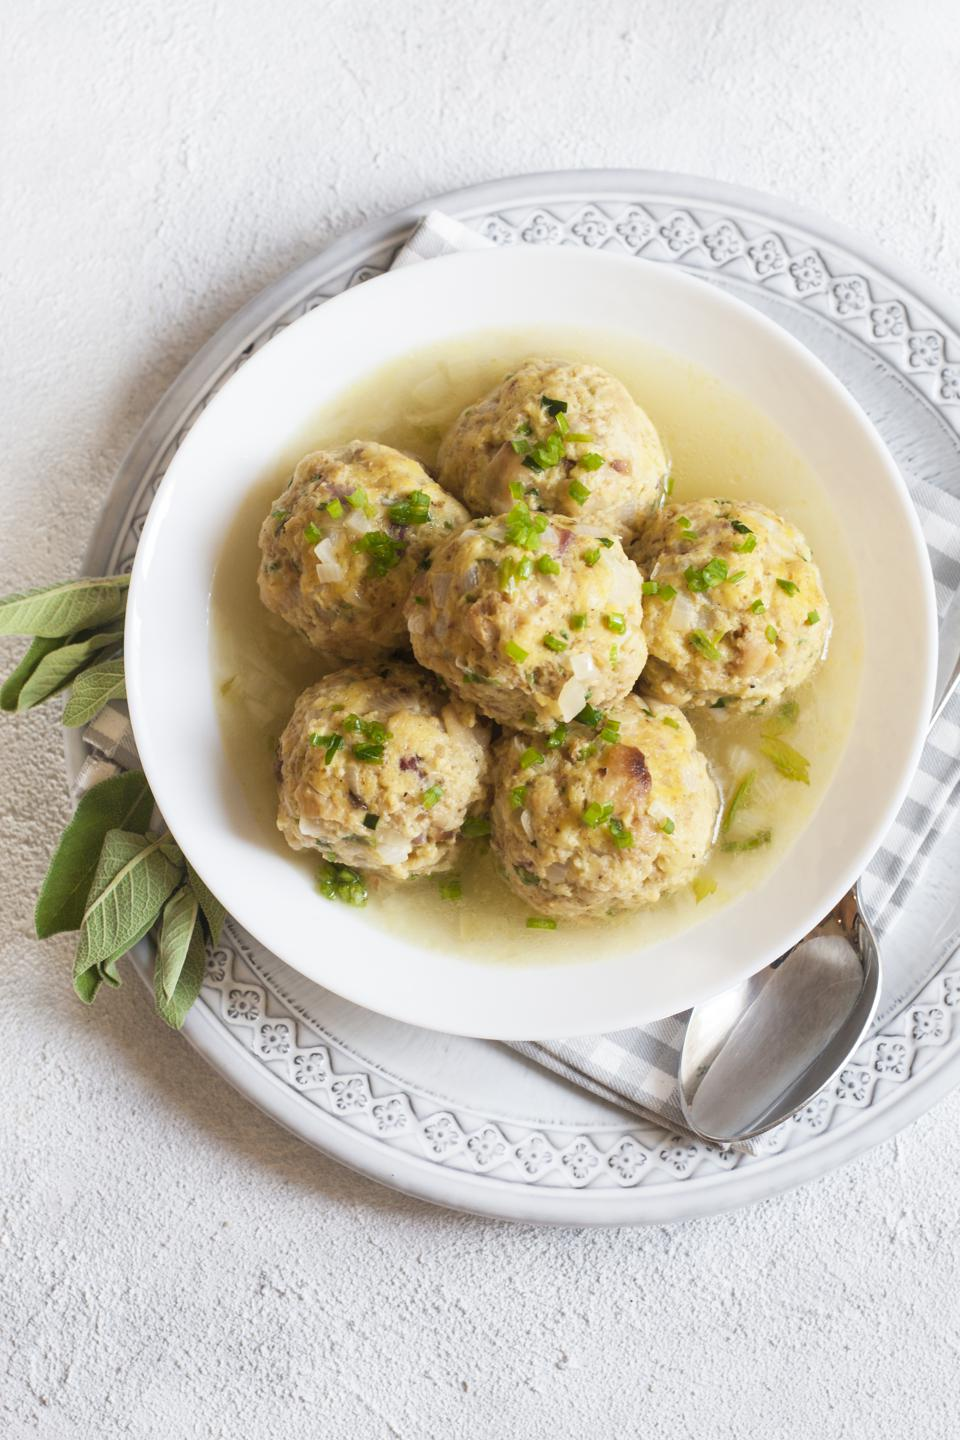 Homemade Canederli or Knödel typical for Alto Adige, Germany, Austria.